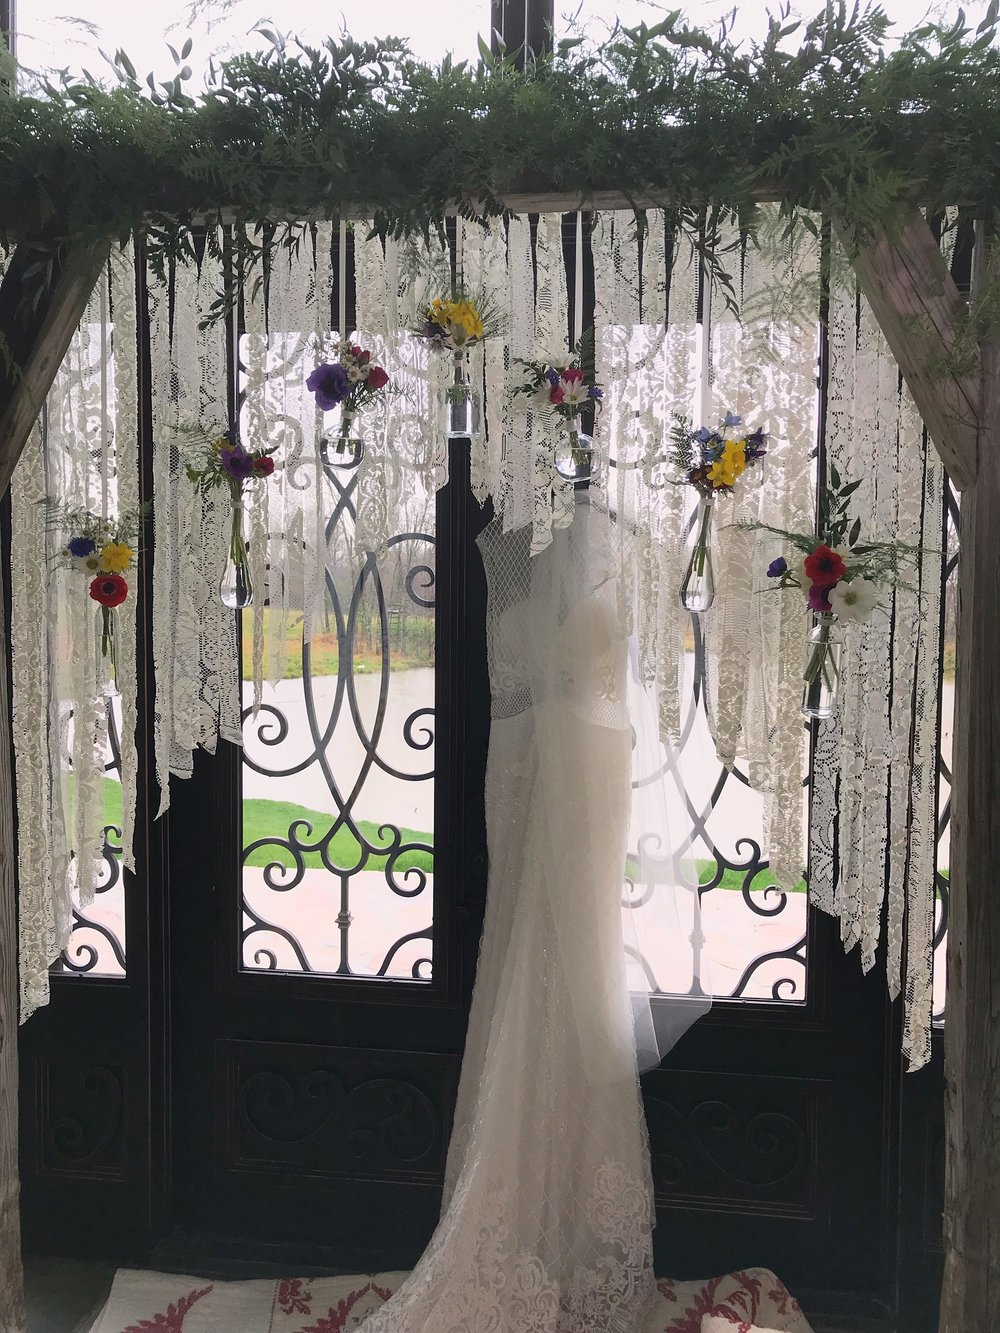 Meagan's arbor—lace strips and hanging bottles with tiny bouquets